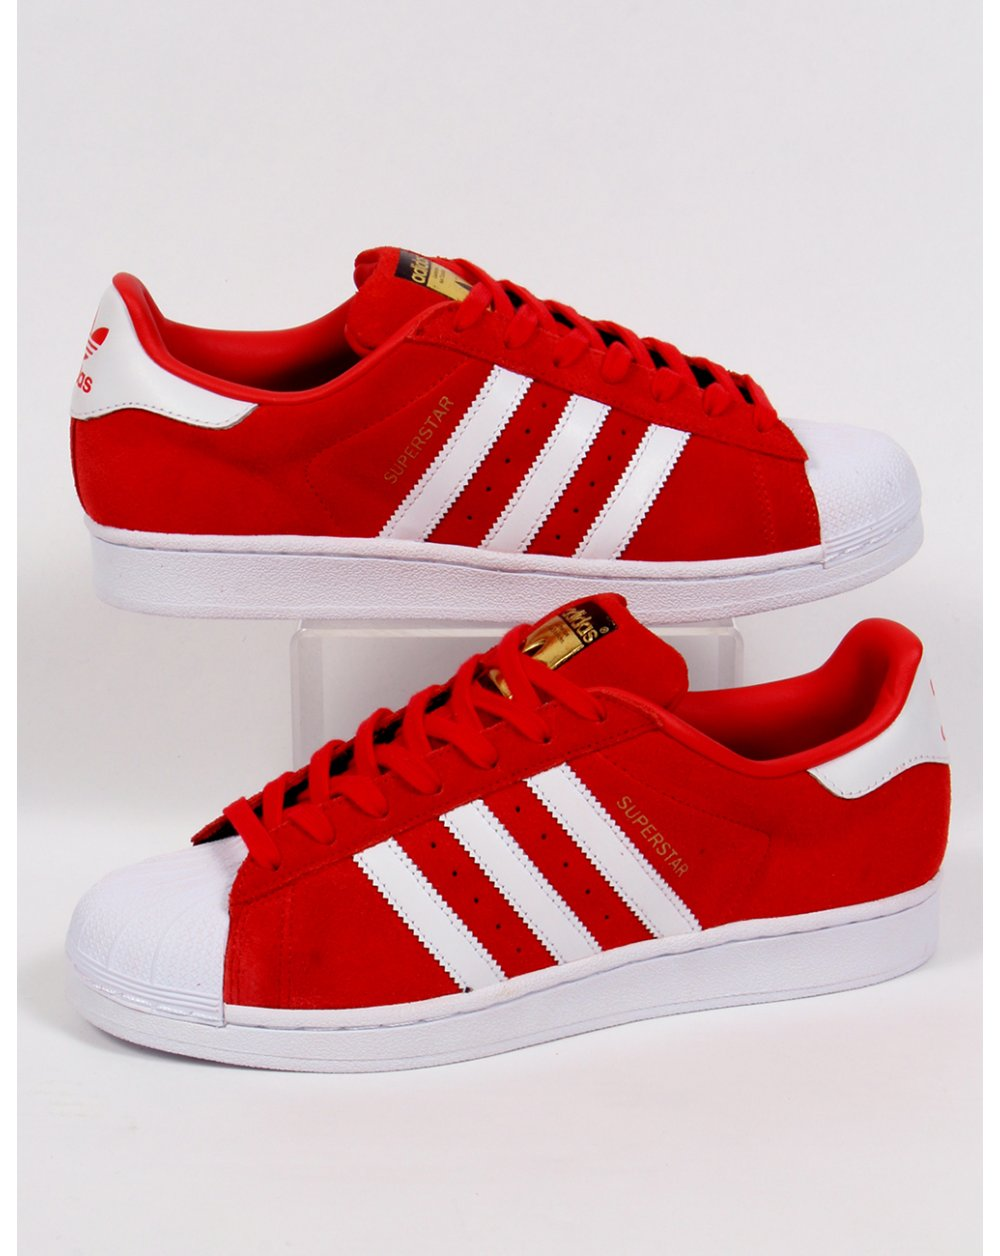 adidas superstar red and white